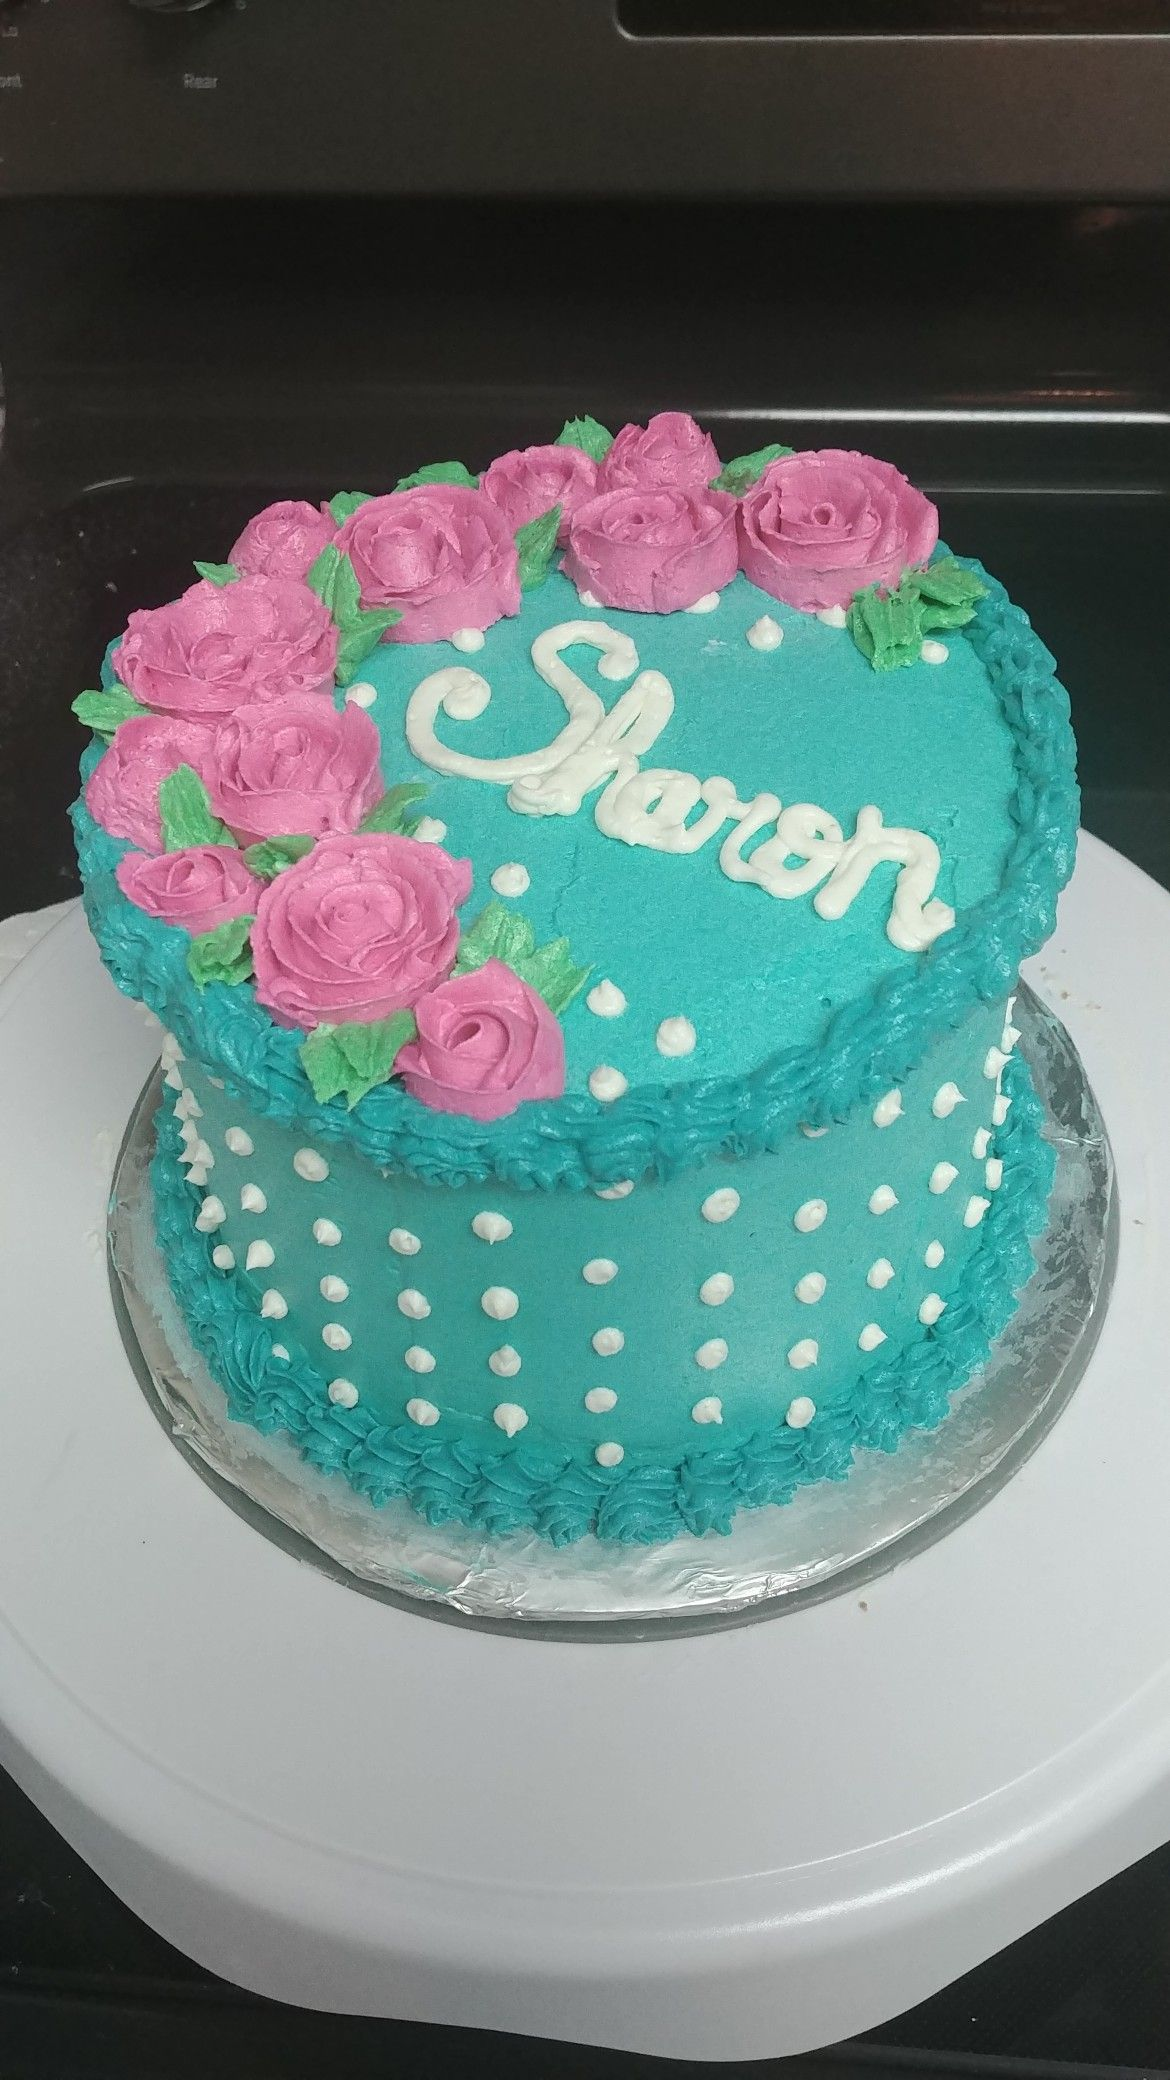 6 Inch Birthday Cake With Buttercream Frosting And Decorations